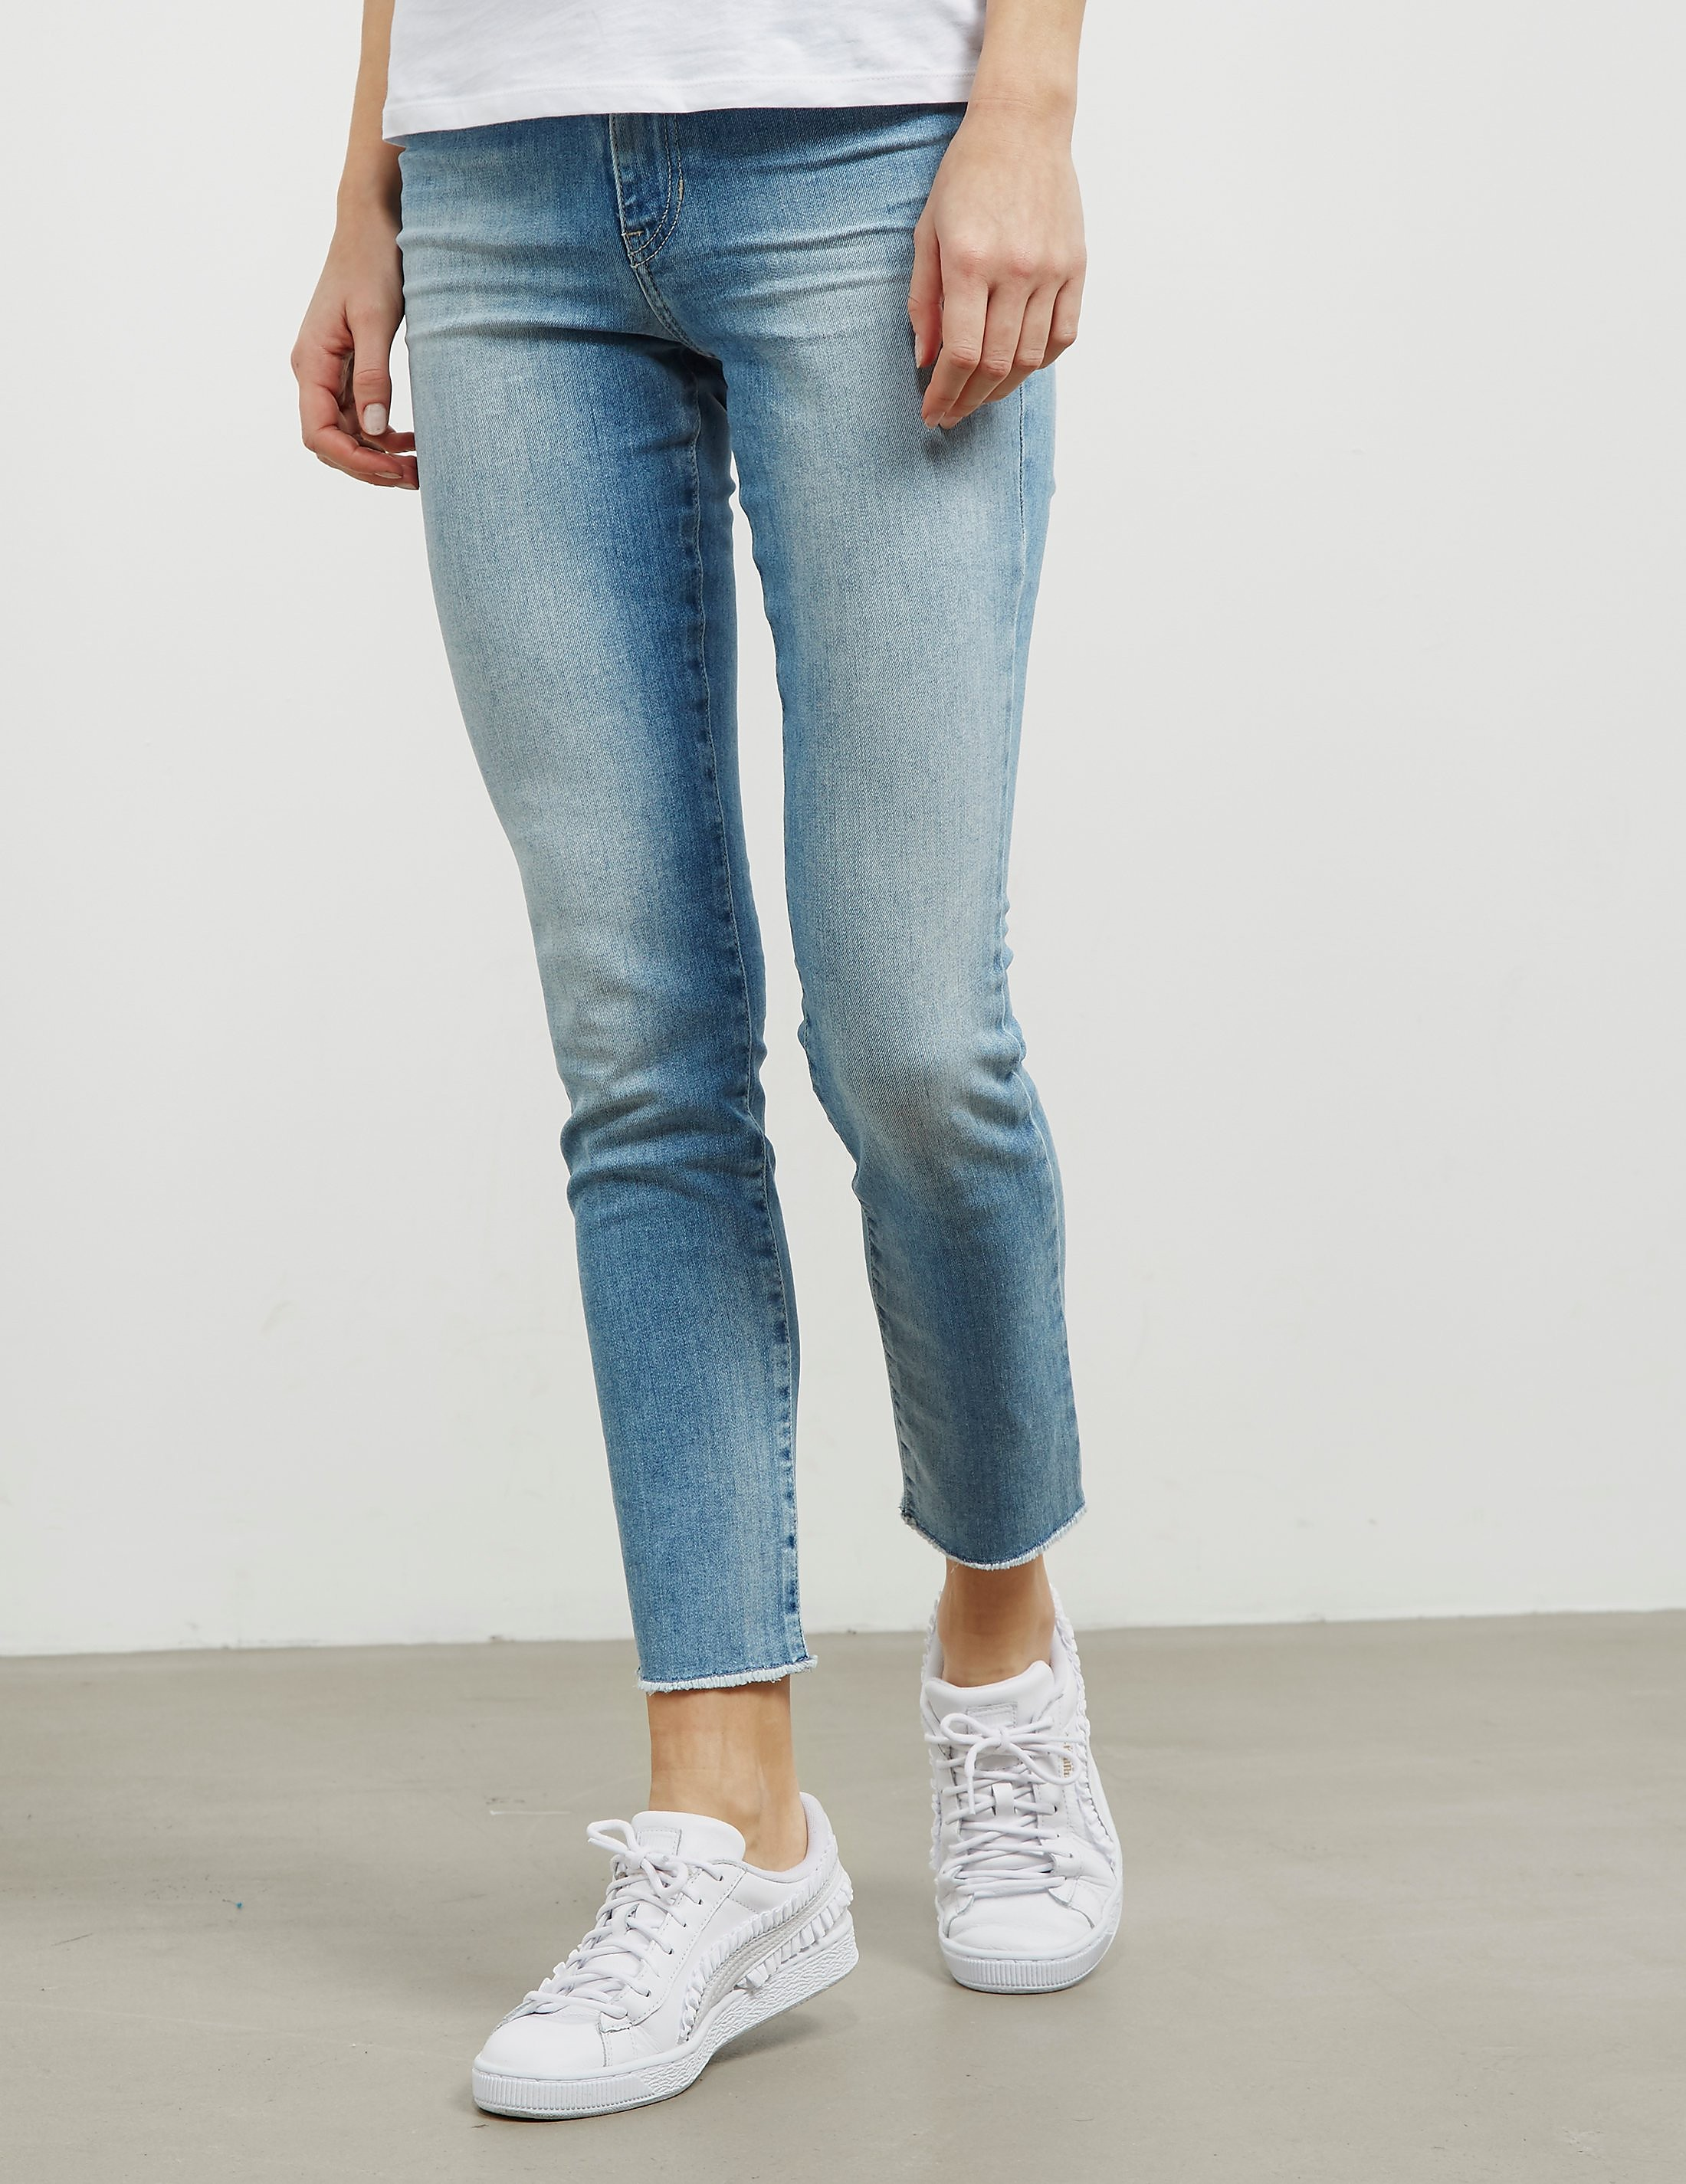 BOSS Orange J11 Skinny Jeans